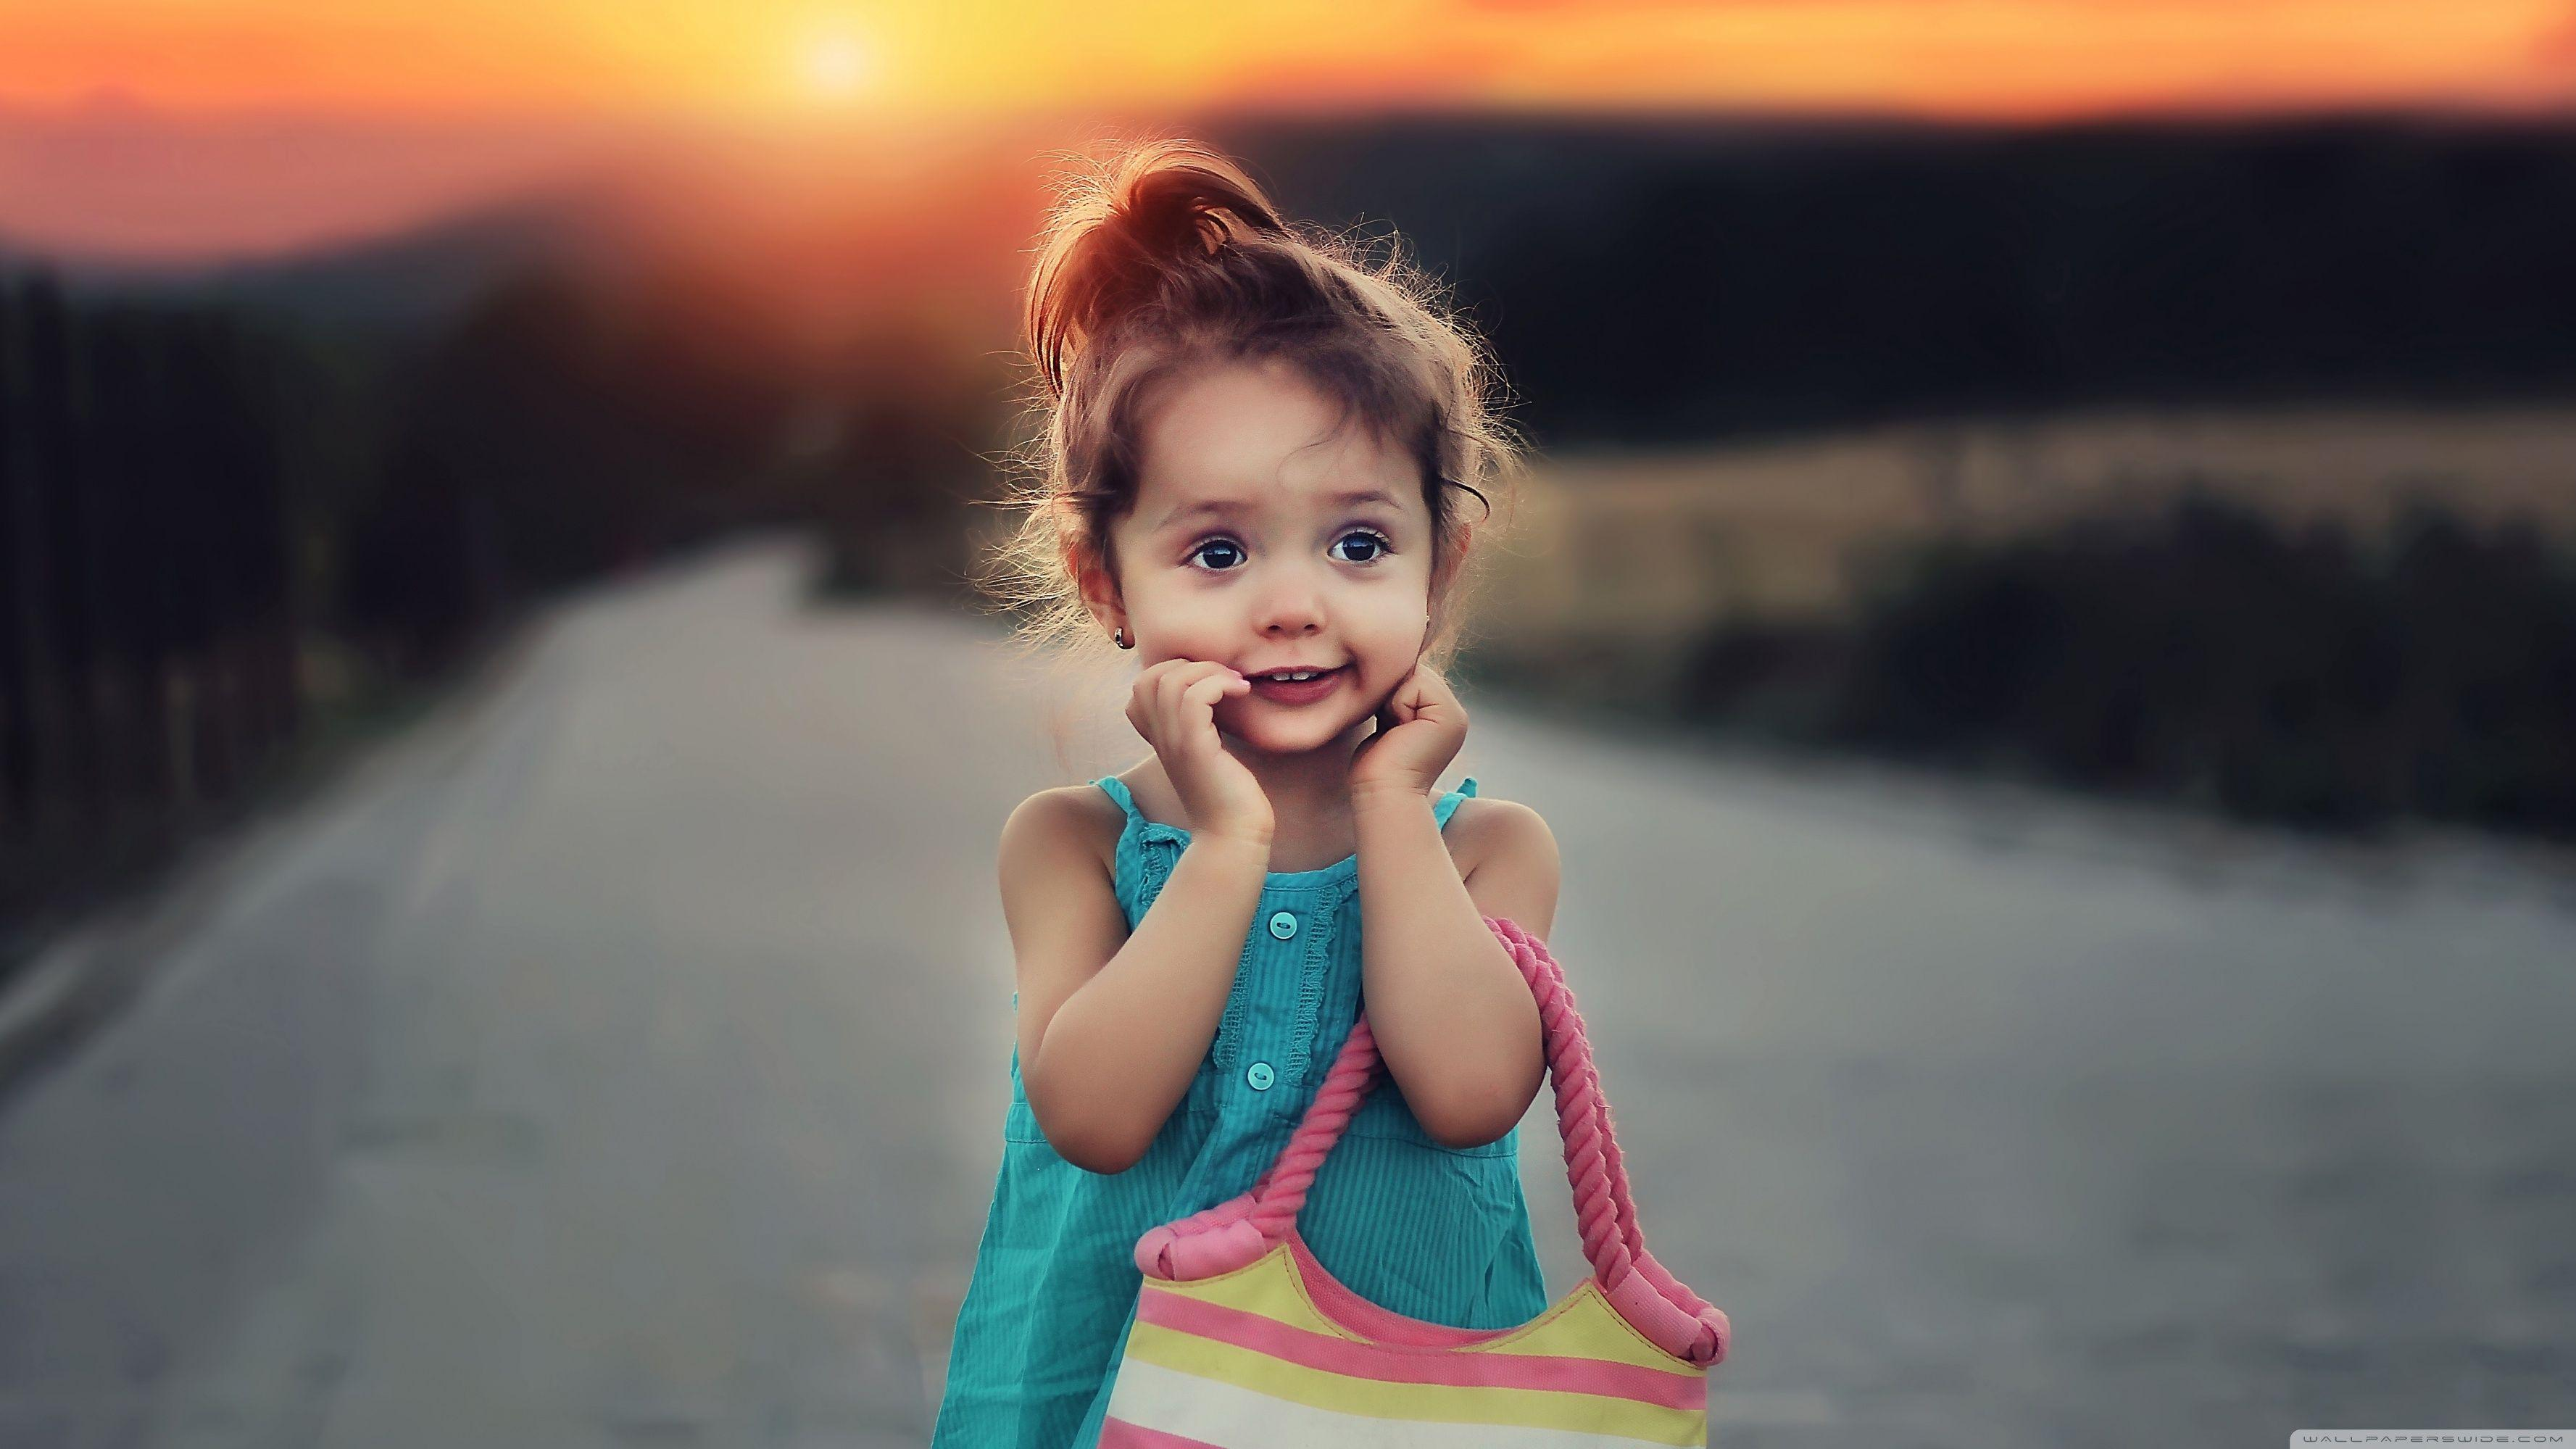 Child Girl Wallpapers Wallpaper Cave